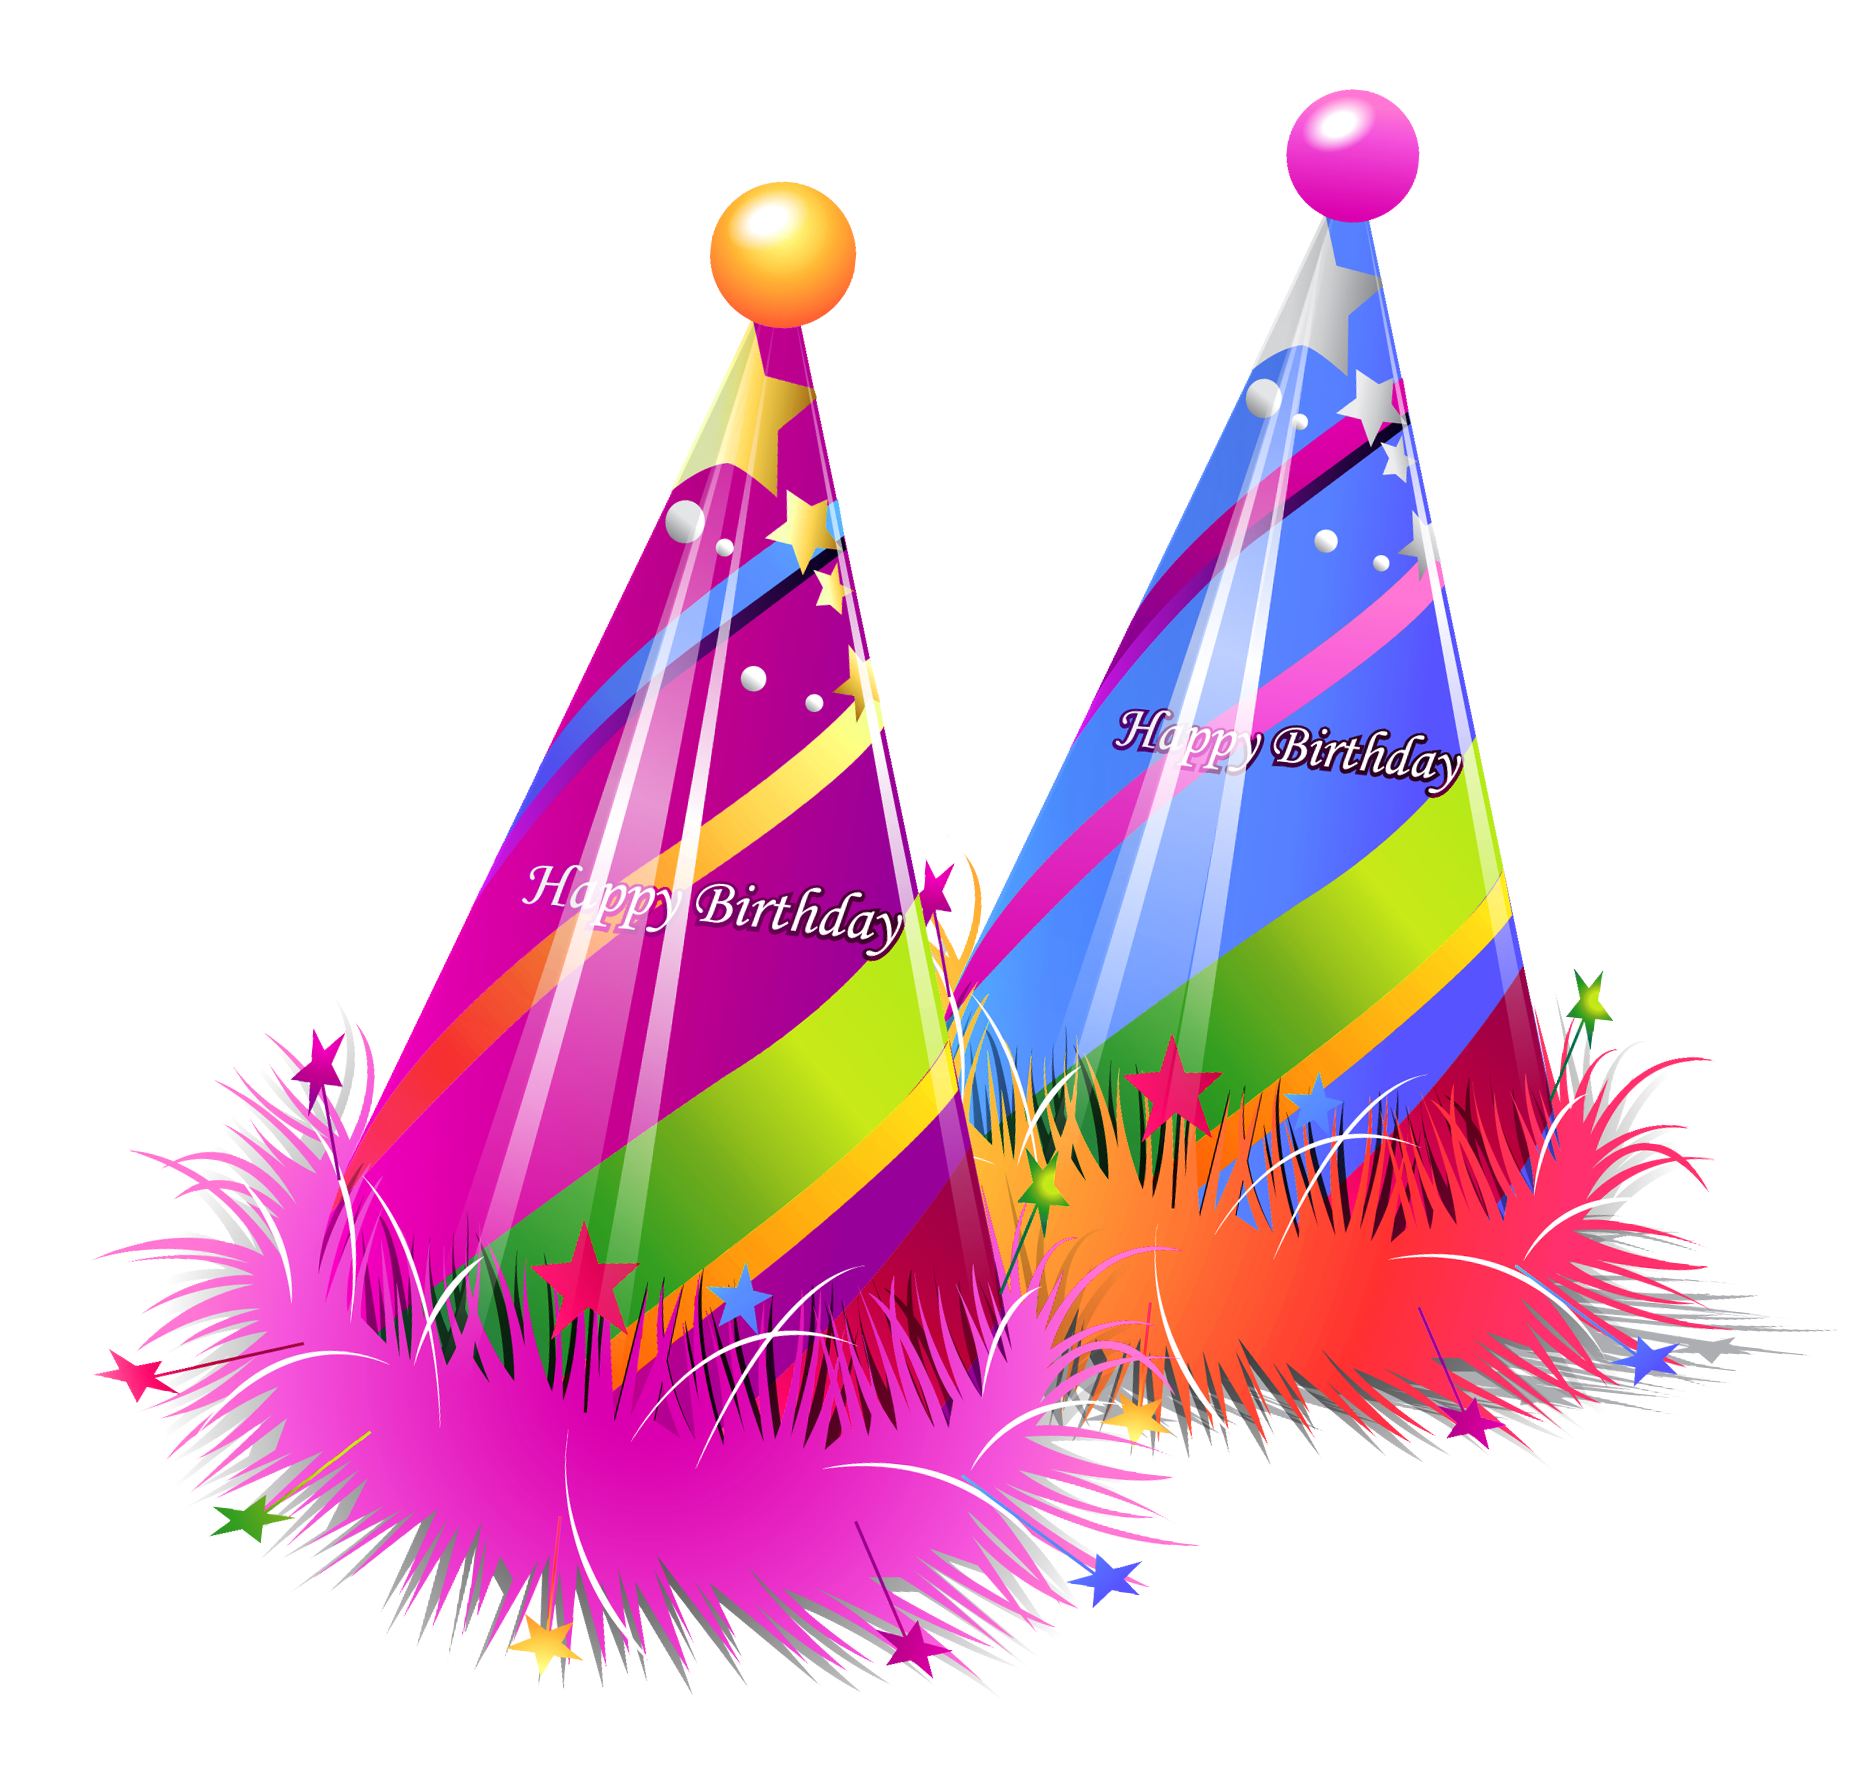 Free Png Download Vector Birthday